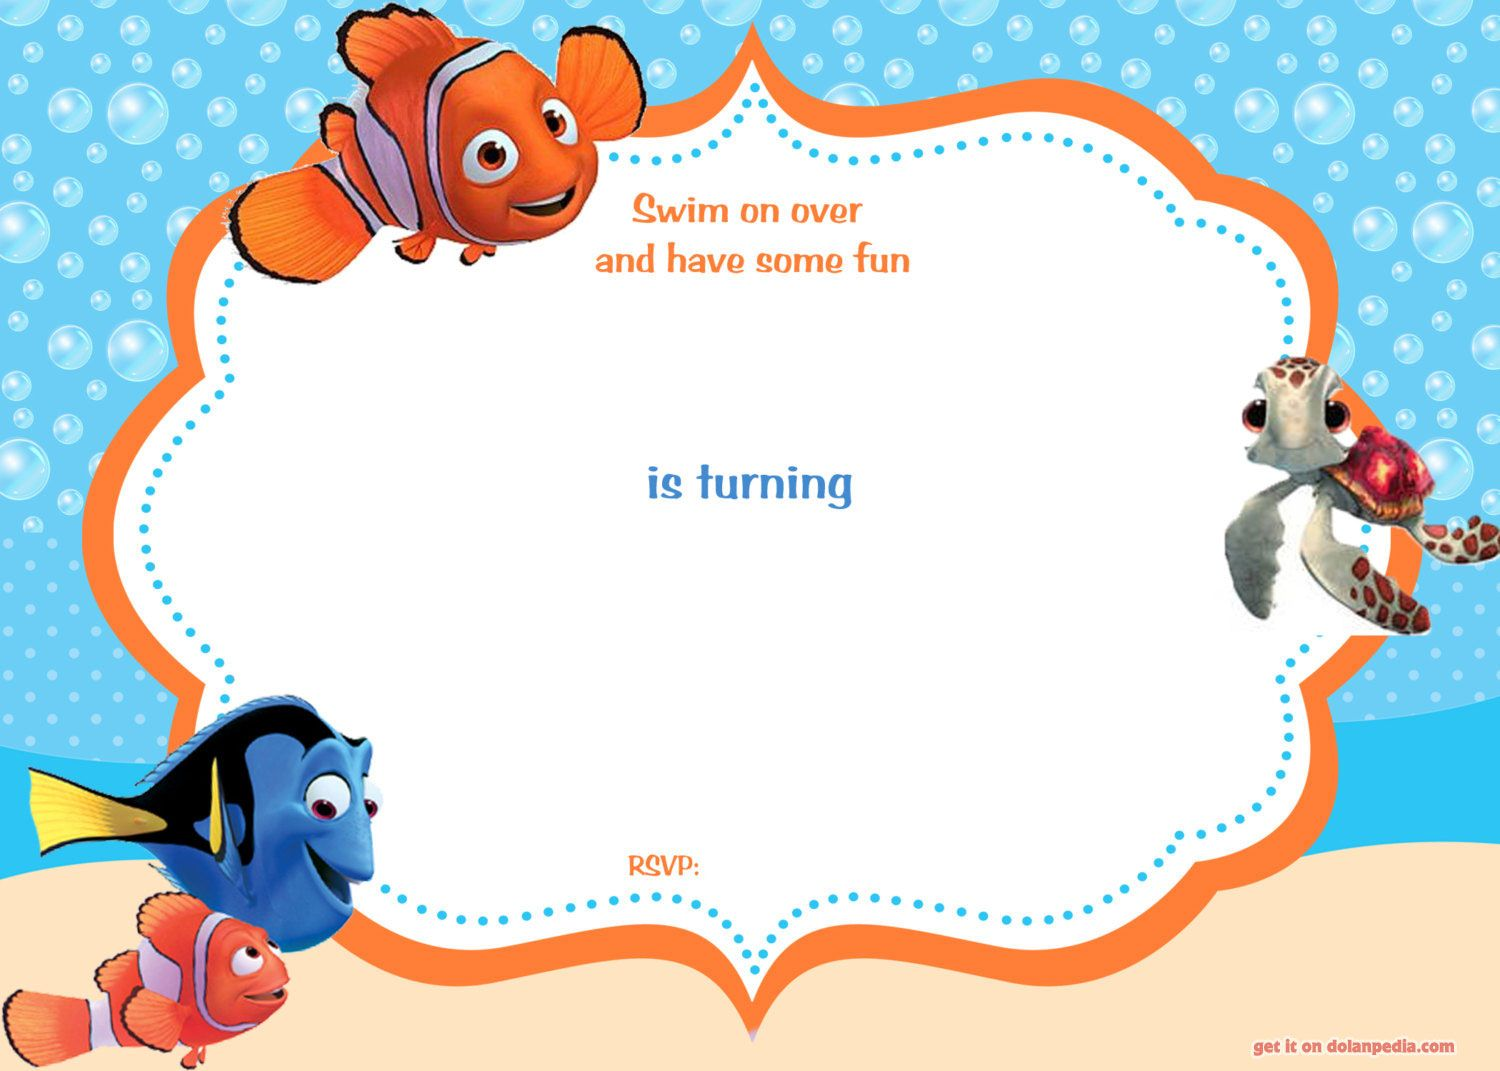 Download Now FREE Template Free Printable Finding Nemo Birthday - Birthday invite free template